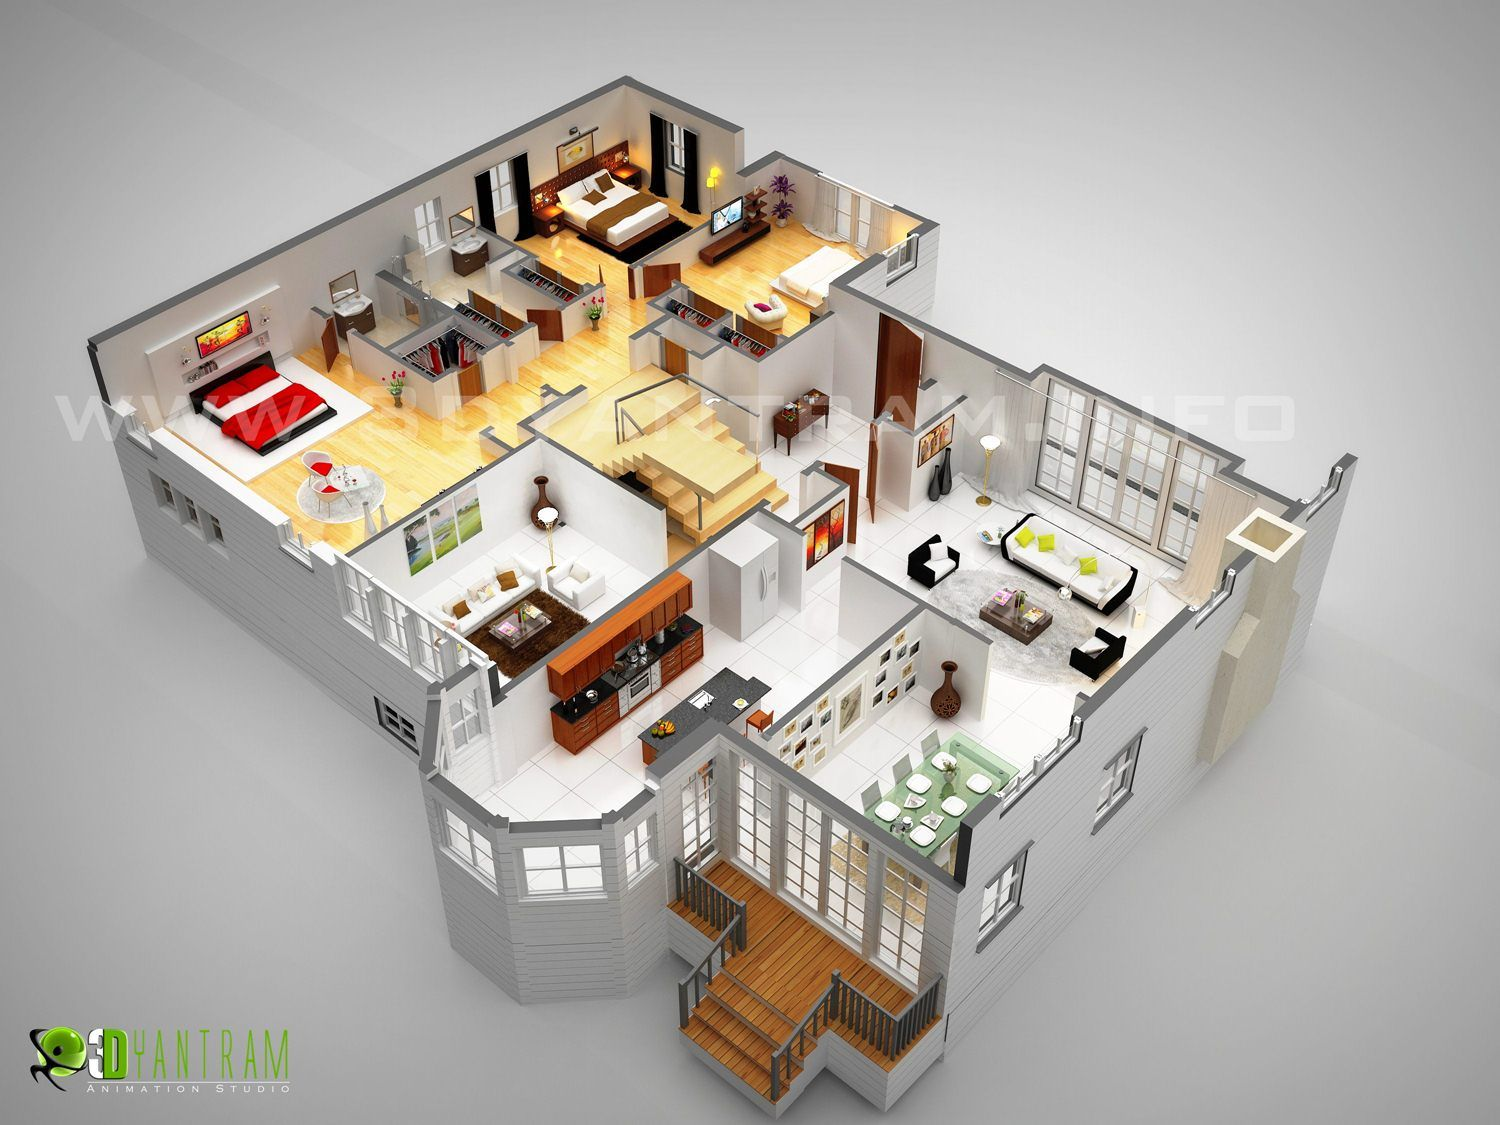 Laxurious residential 3d floor plan paris sims for 3d space planner